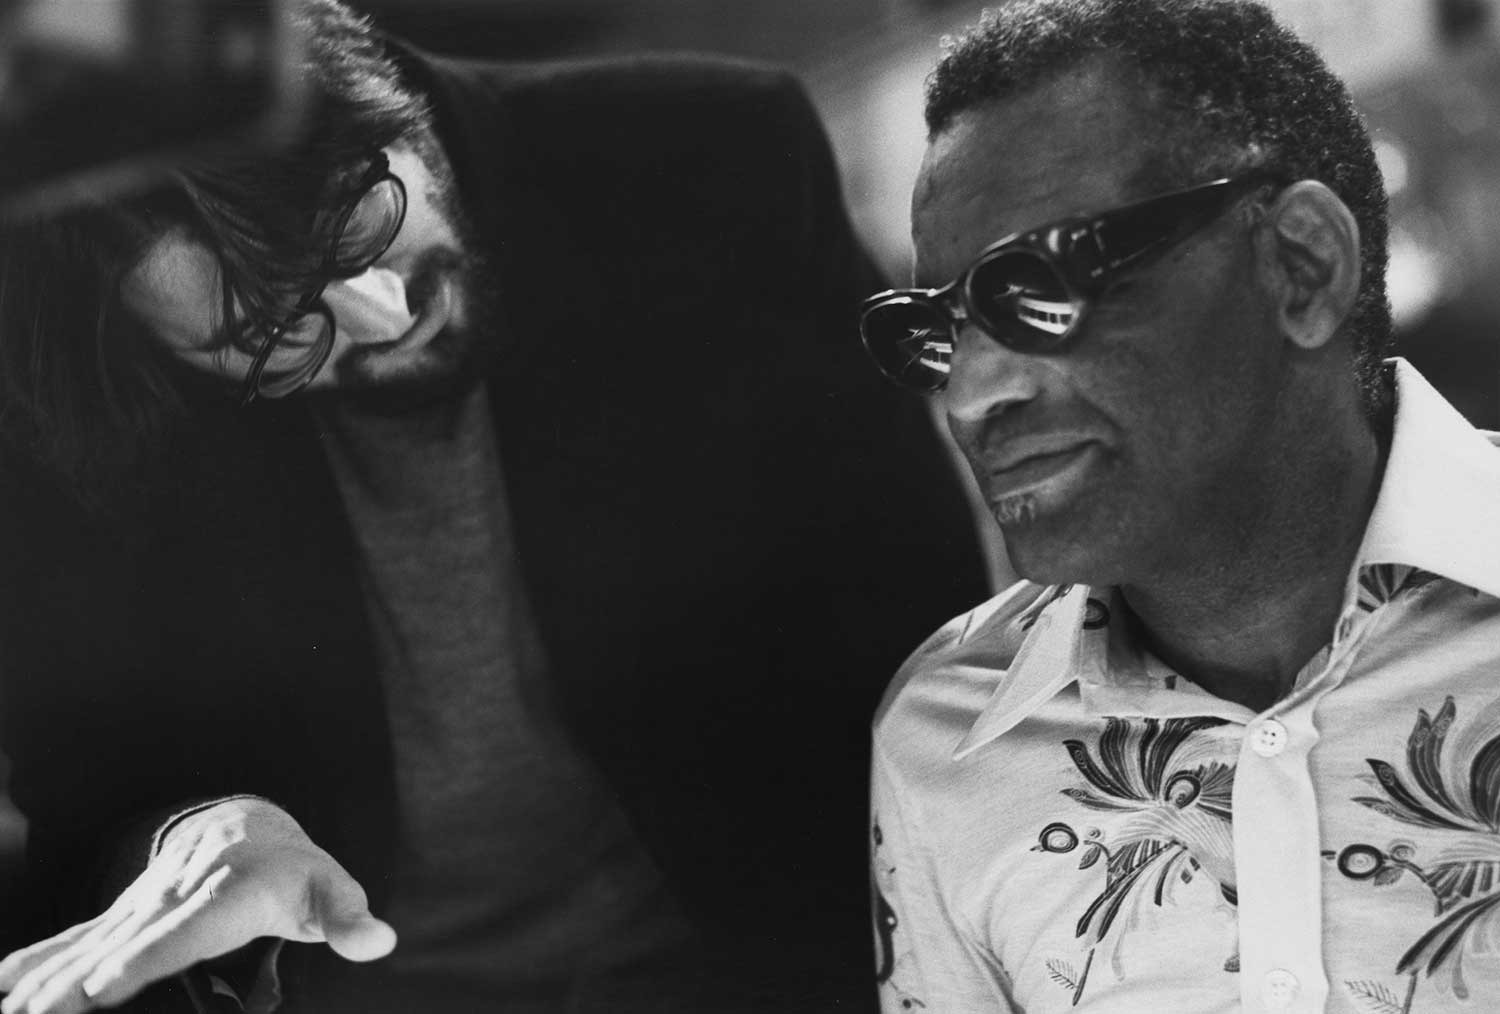 The owner of Ray's Music Exchange in The Blues Brothers is none other than Ray Charles himself, seen here during production with director John Landis.